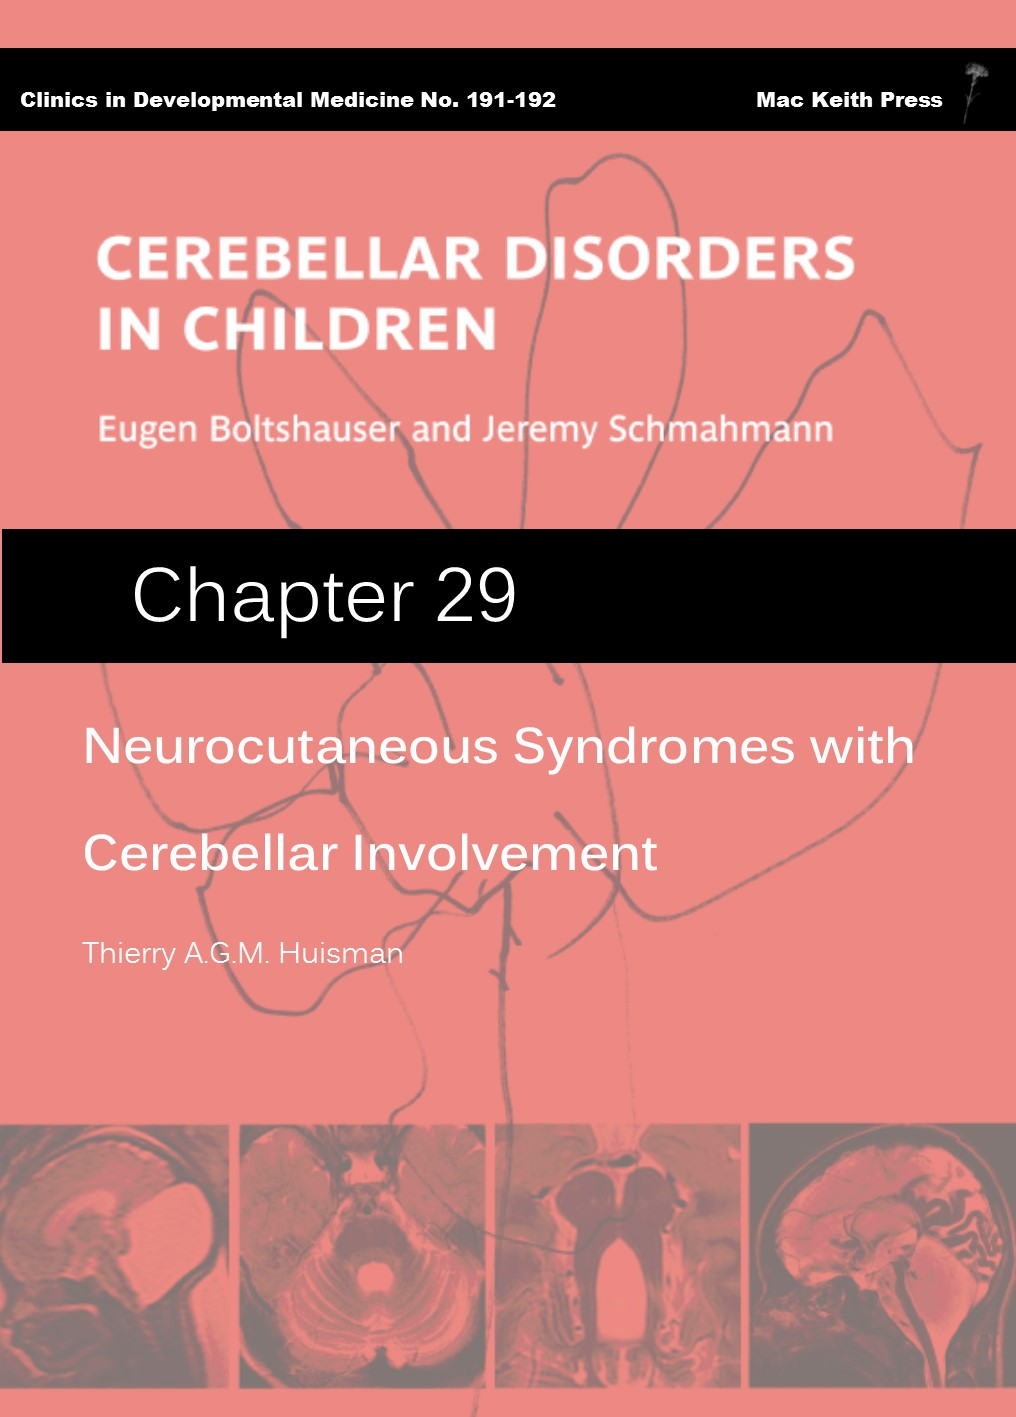 Neurocutaneous Syndromes with Cerebellar Involvement - Cerebellar Disorders in Children (Chapter 29) COVER